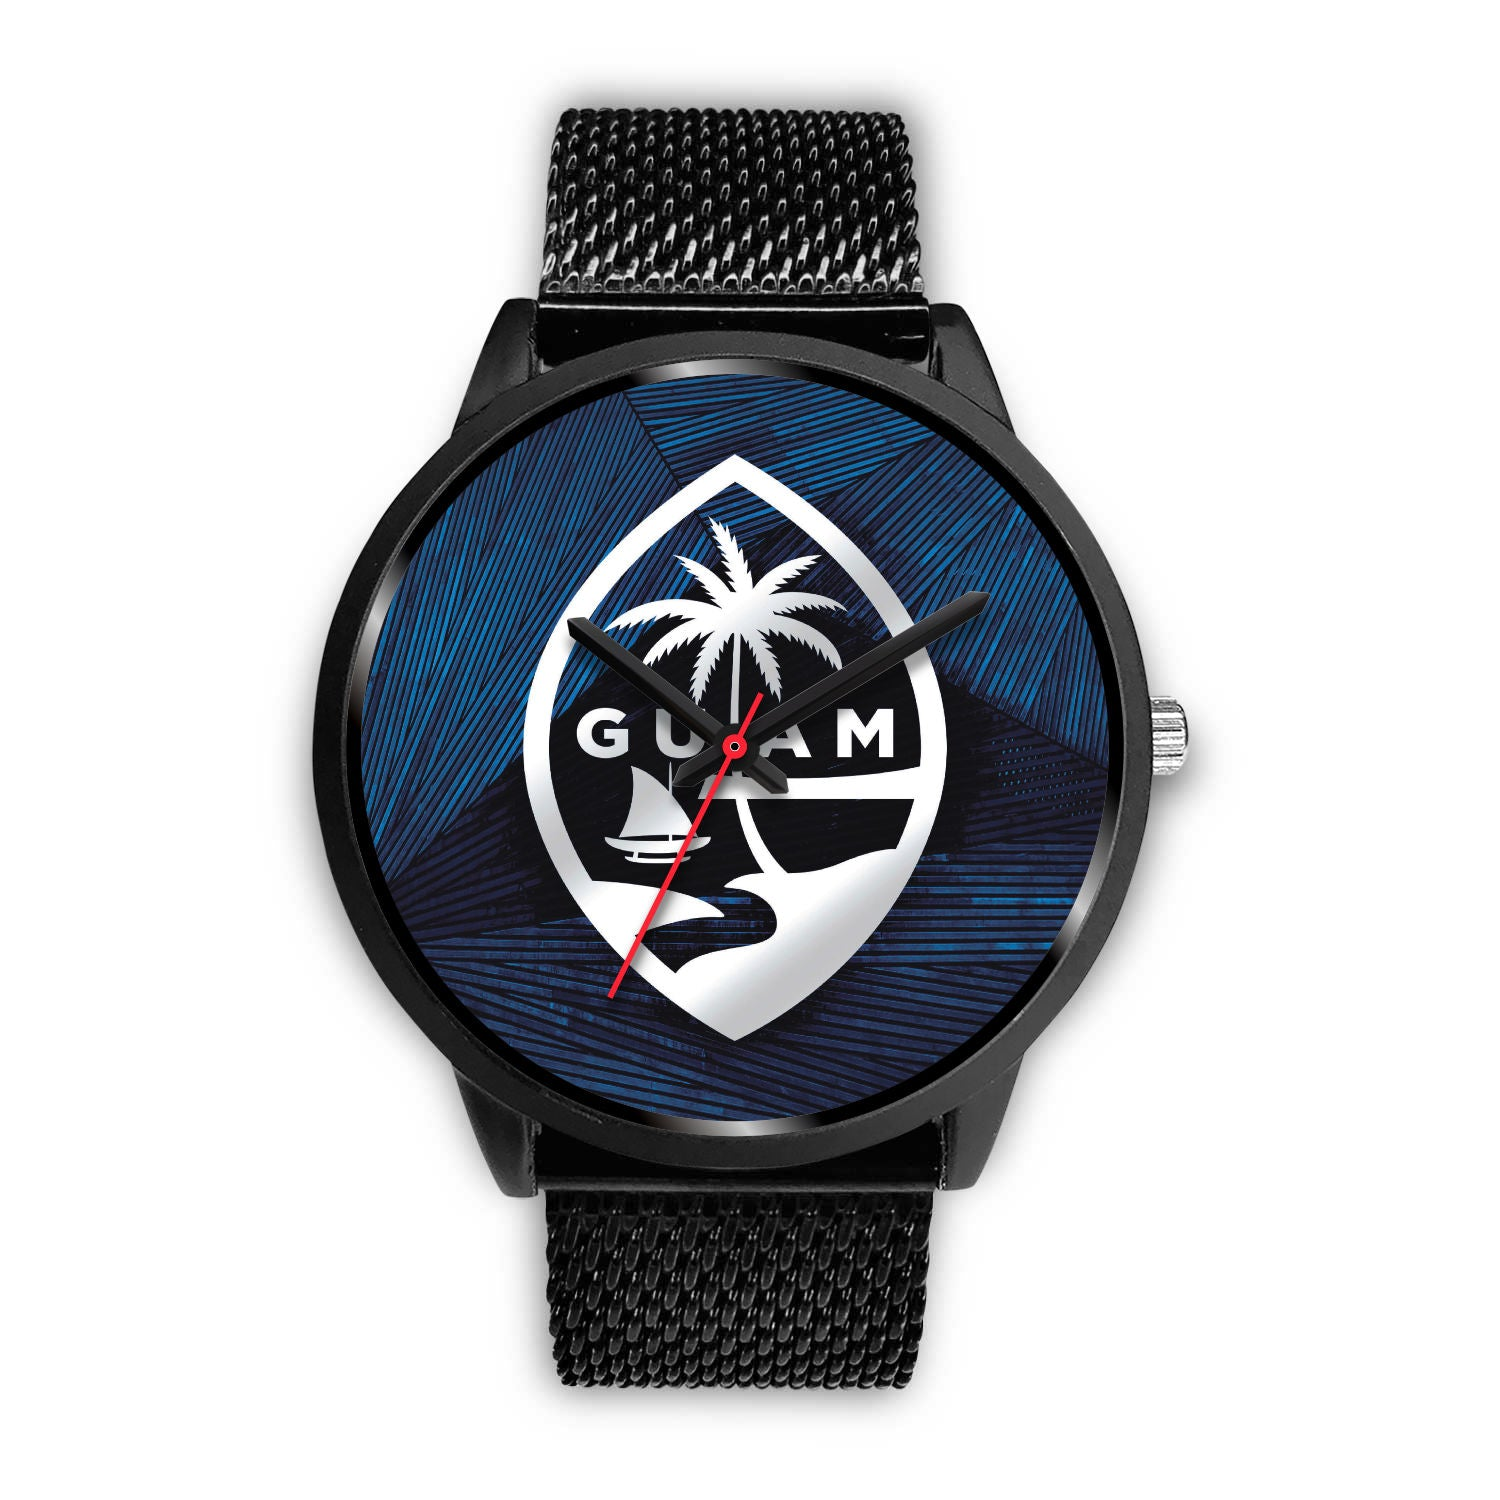 Guam Seal Chamorro Islander Blue Watch